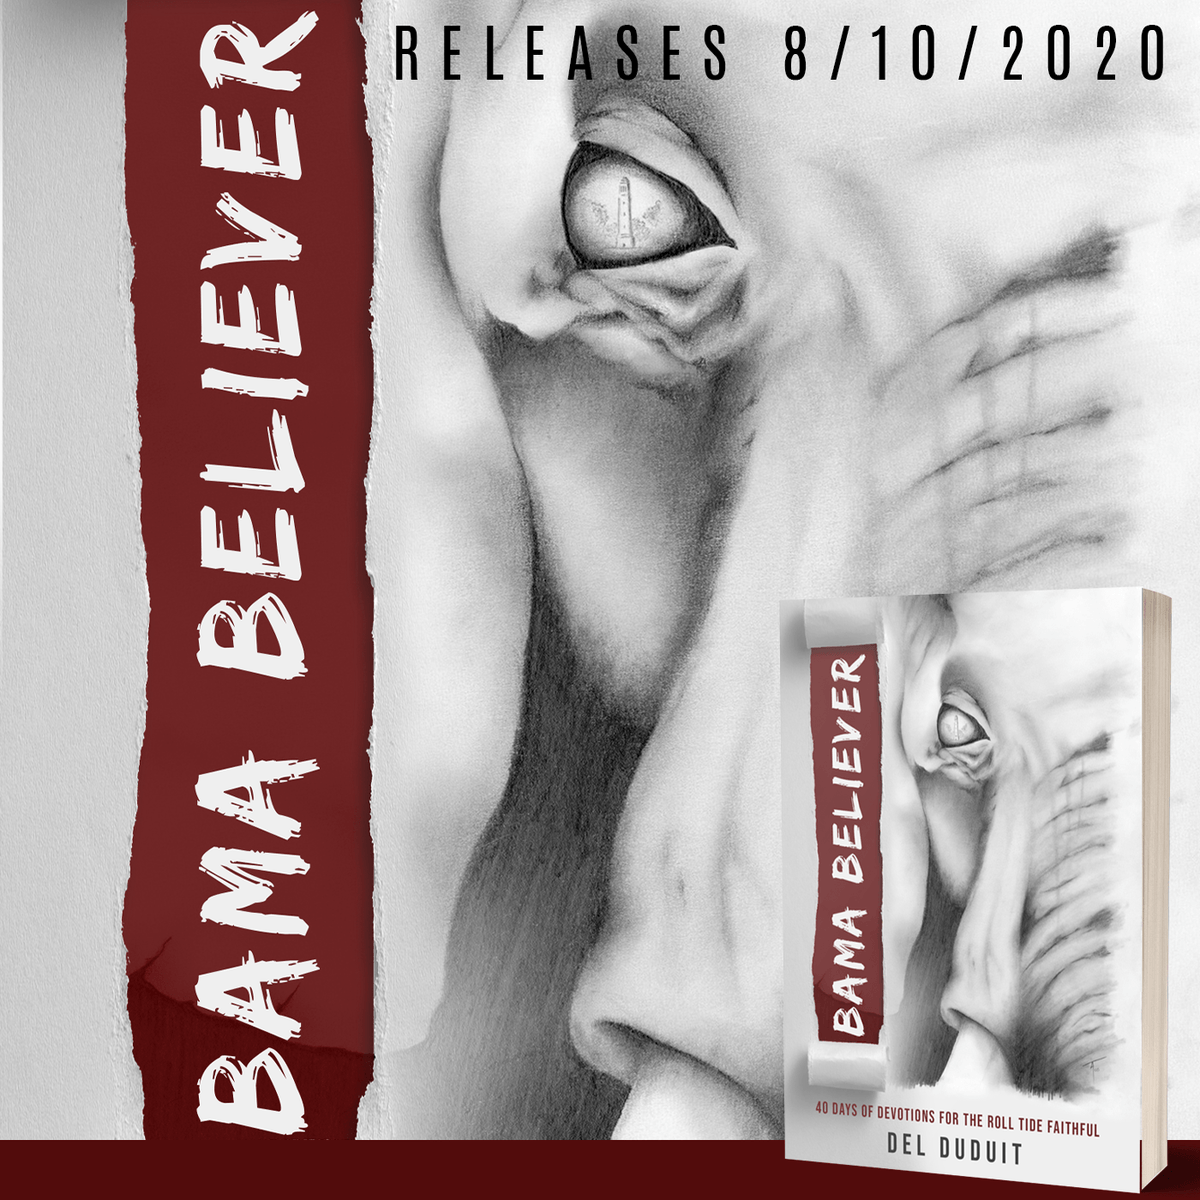 Hey #Alabama Football Fans! #RollTide #New Release | Available August 10, 2020  This forty-day devotional from @delduduit will have fans cheering as each chapter relives key football moments. https://t.co/yOe9c04WNW https://t.co/XVij6Lng5E